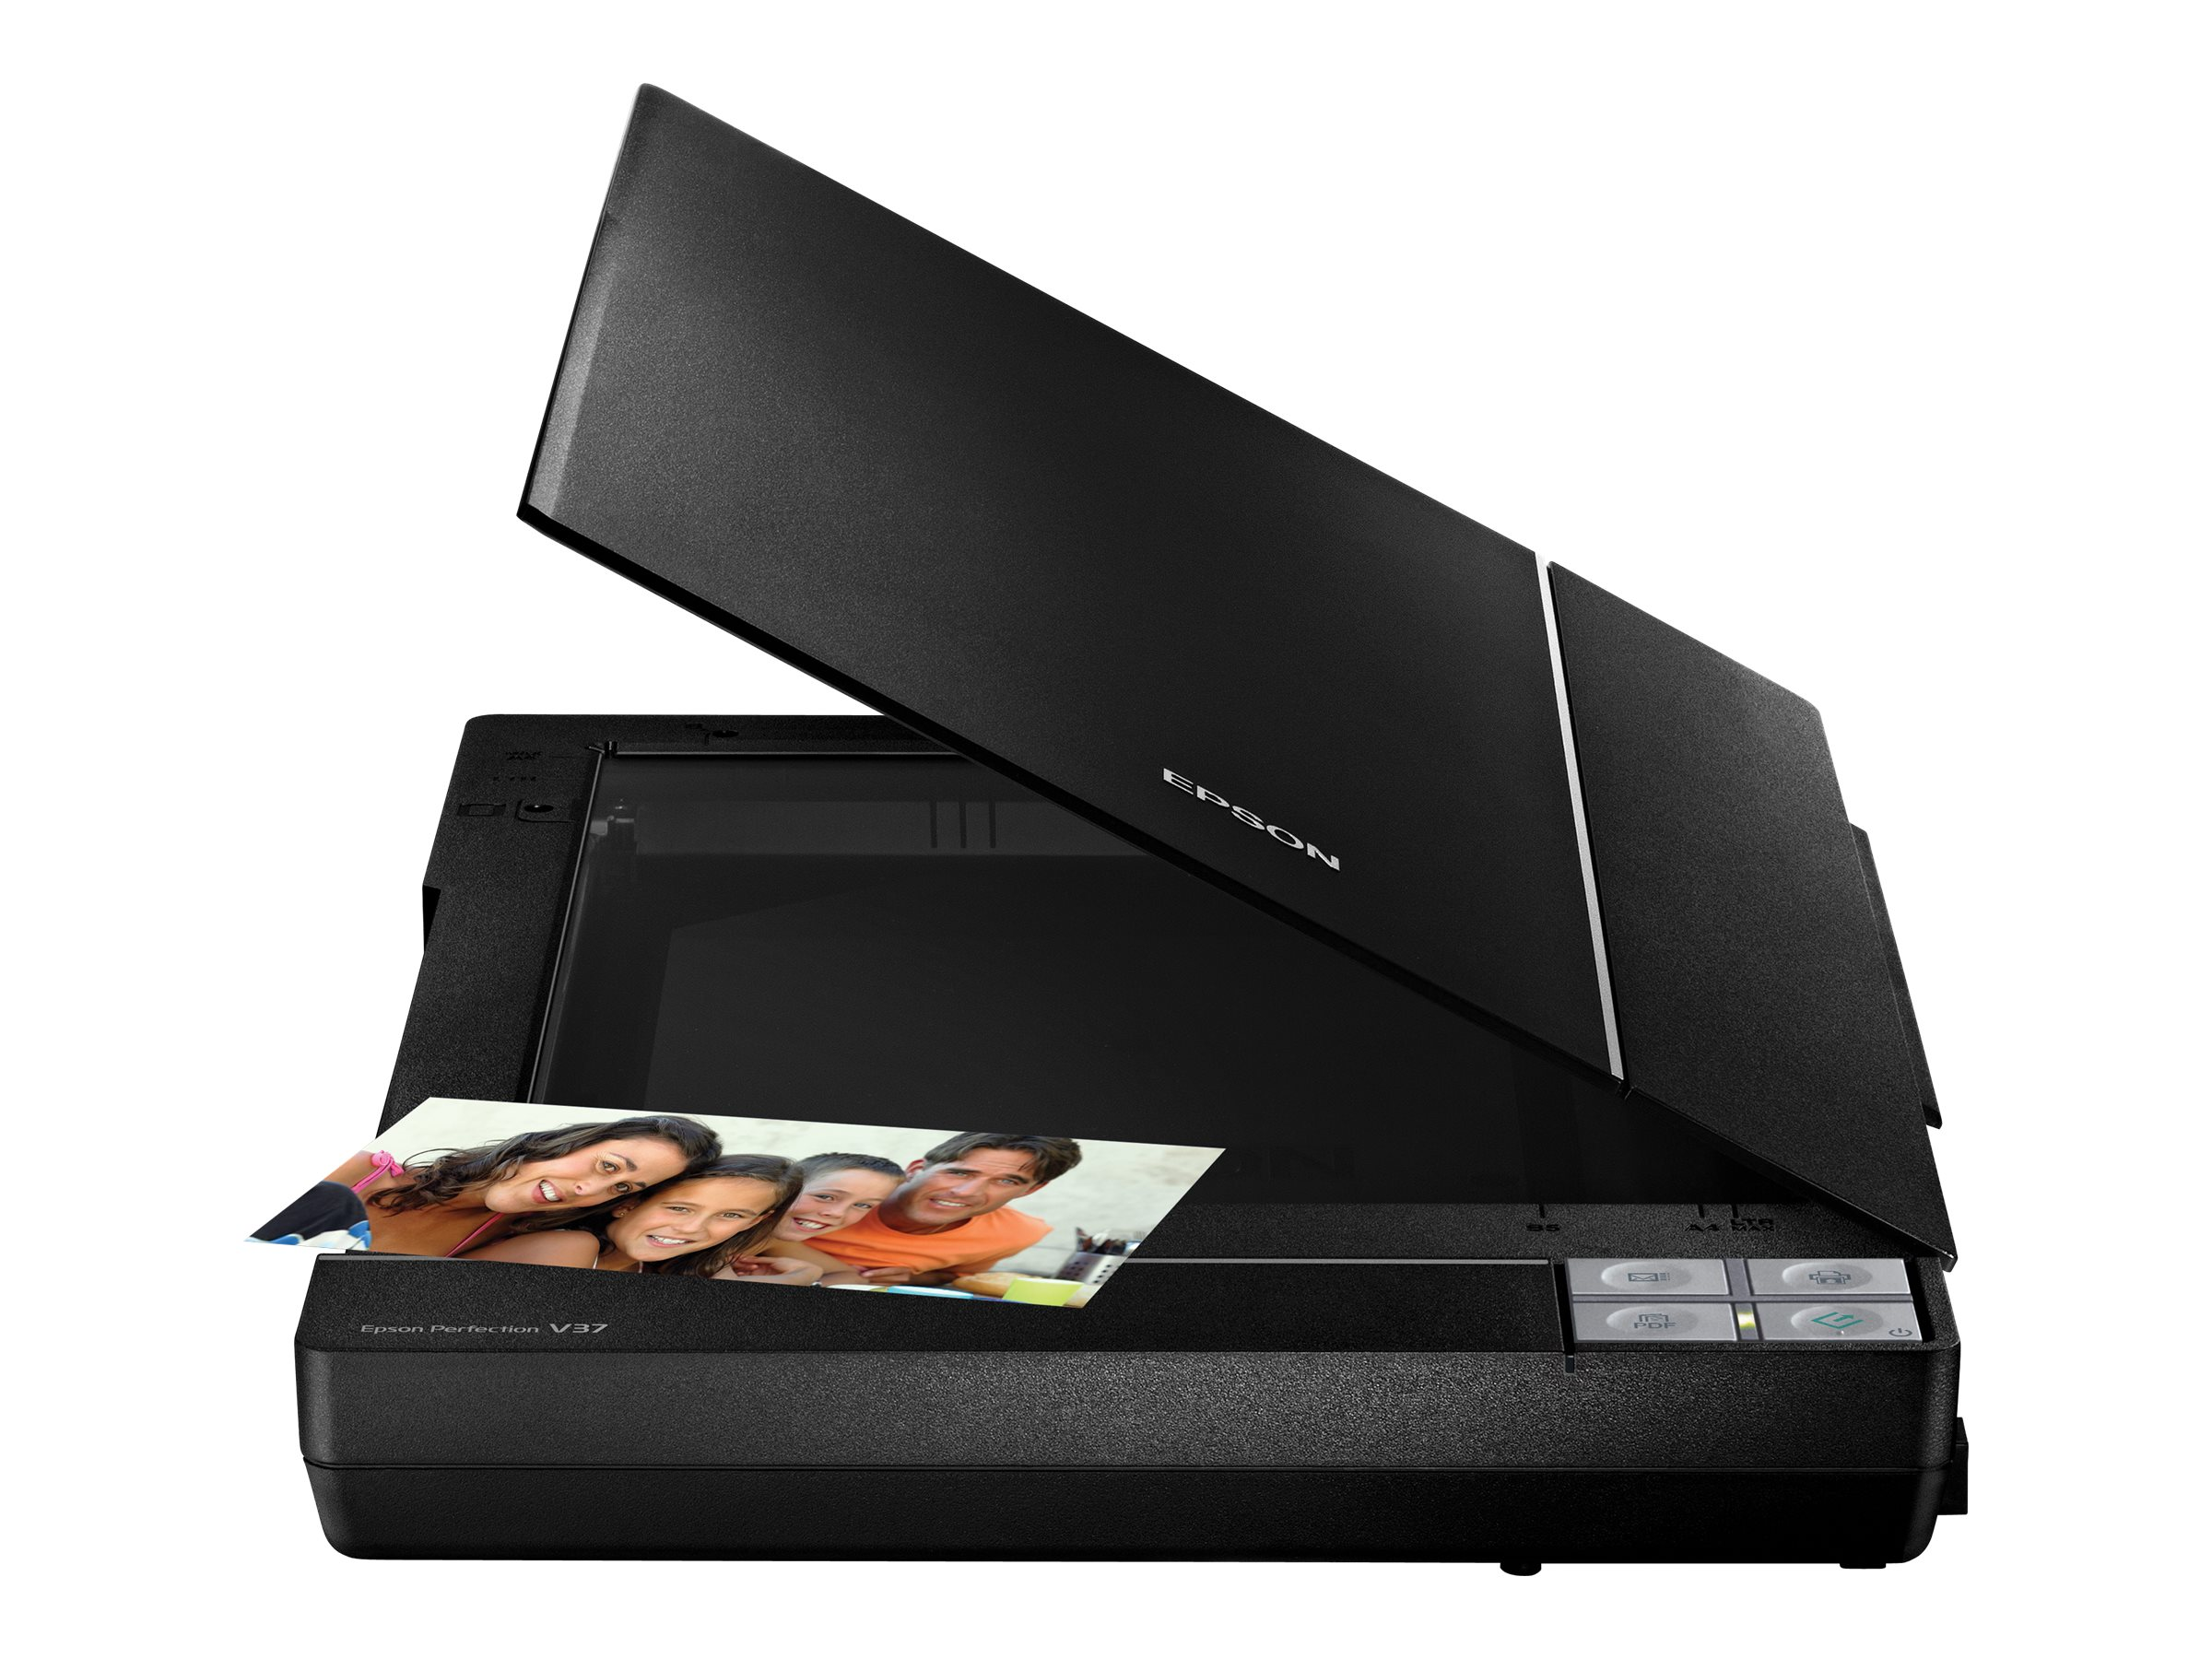 Epson Perfection V37 Scanner USB 4800dpi - $99.99 less instant rebate of $2.00, B11B207201, 14904422, Scanners